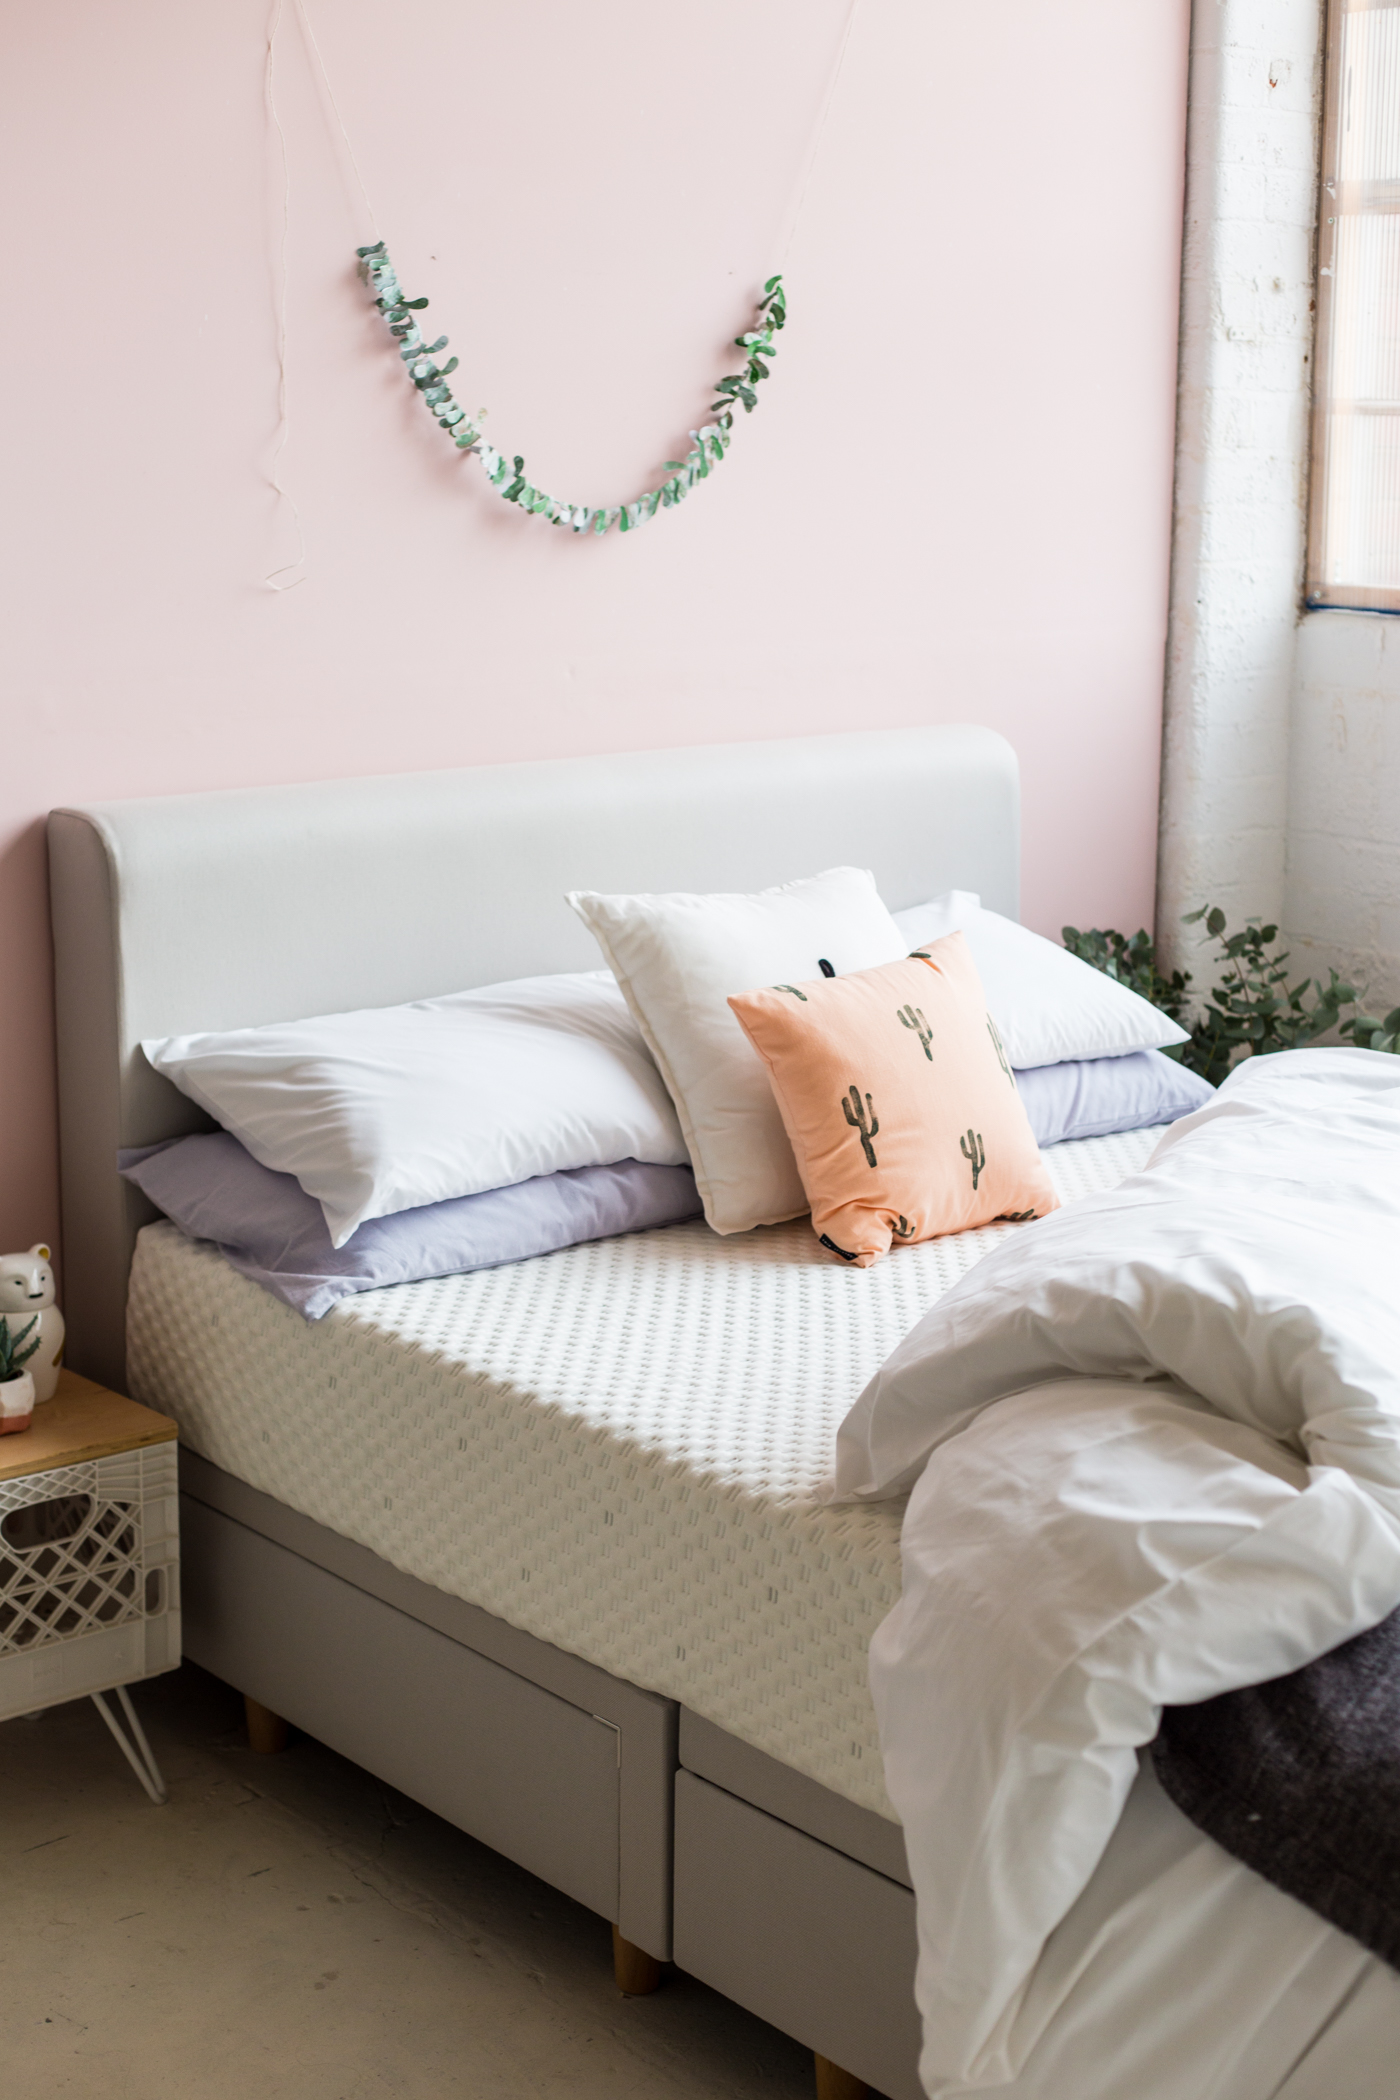 Get A Silentnight Sleep With Studio Mattress Fall For Diy